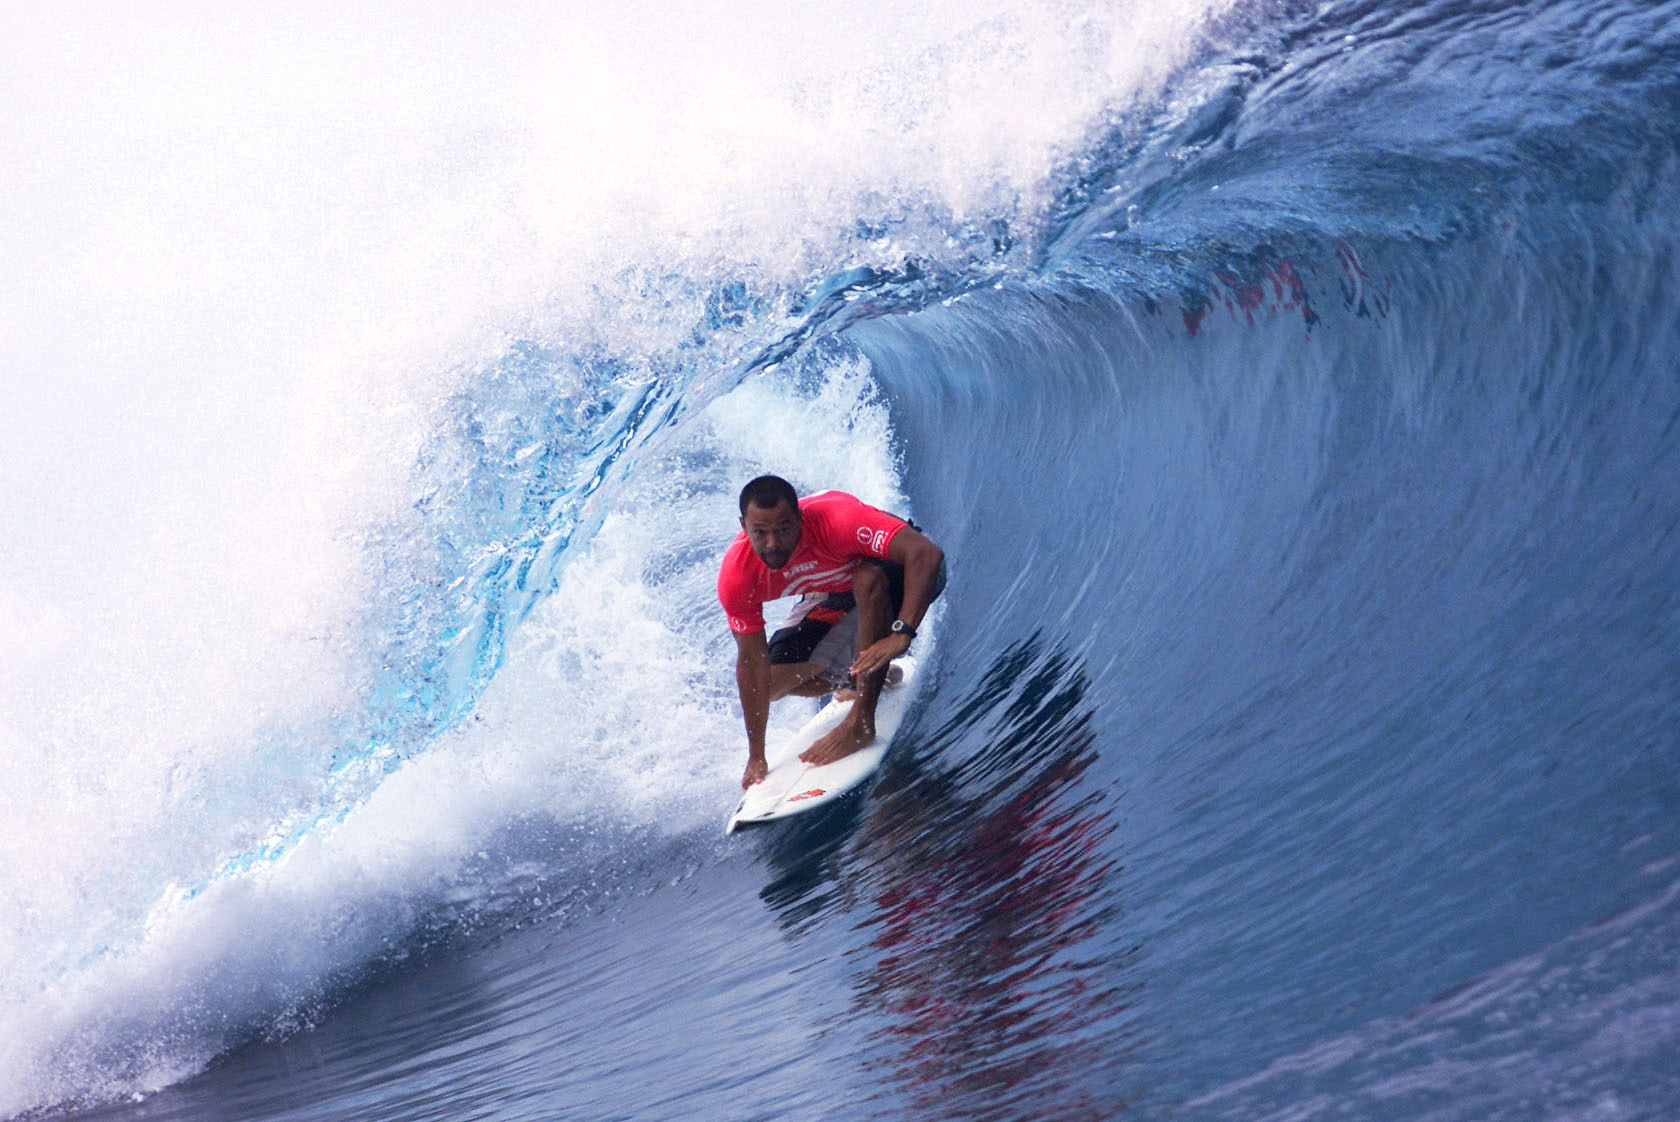 Surfing: Surfing legend Sunny Garcia in critical condition after being found unconscious at home